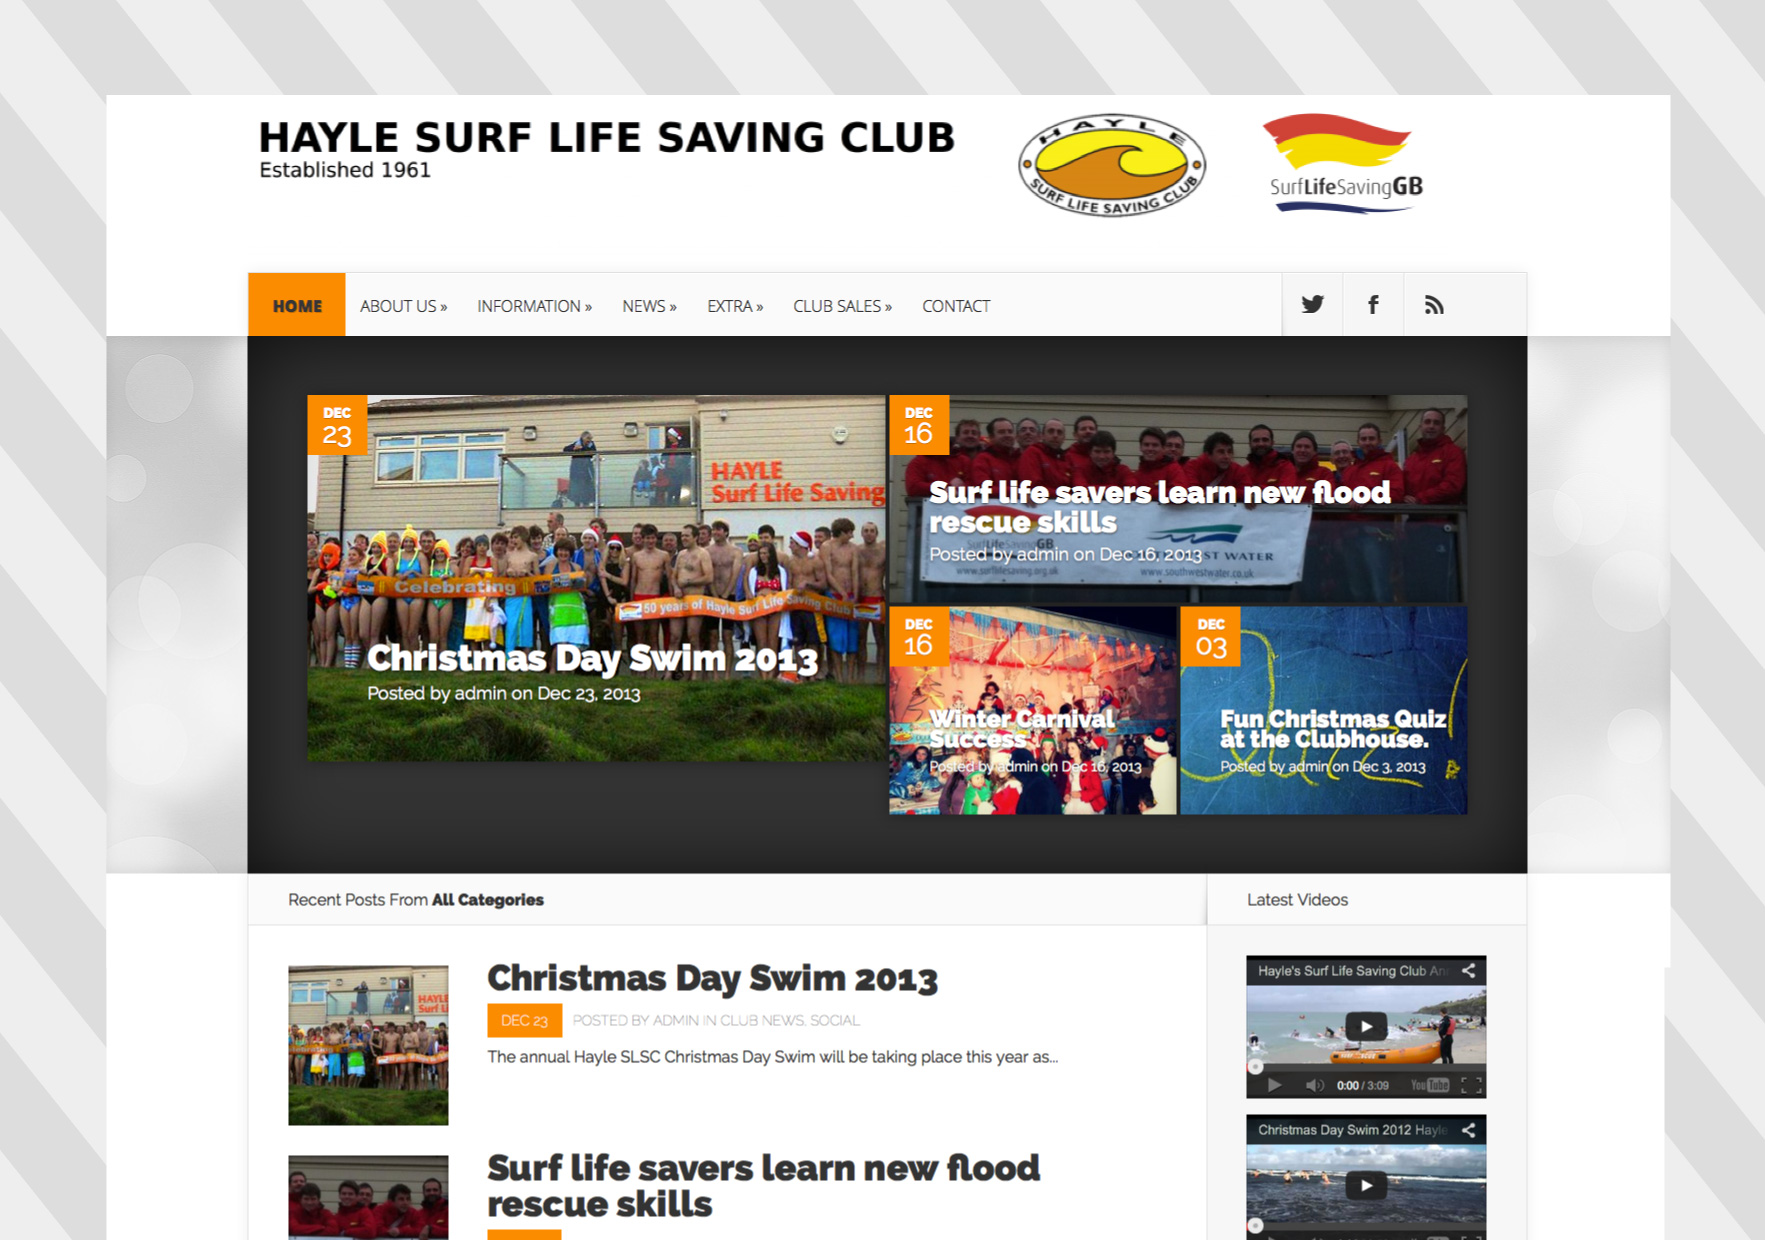 Hayle Surf Life Saving Club